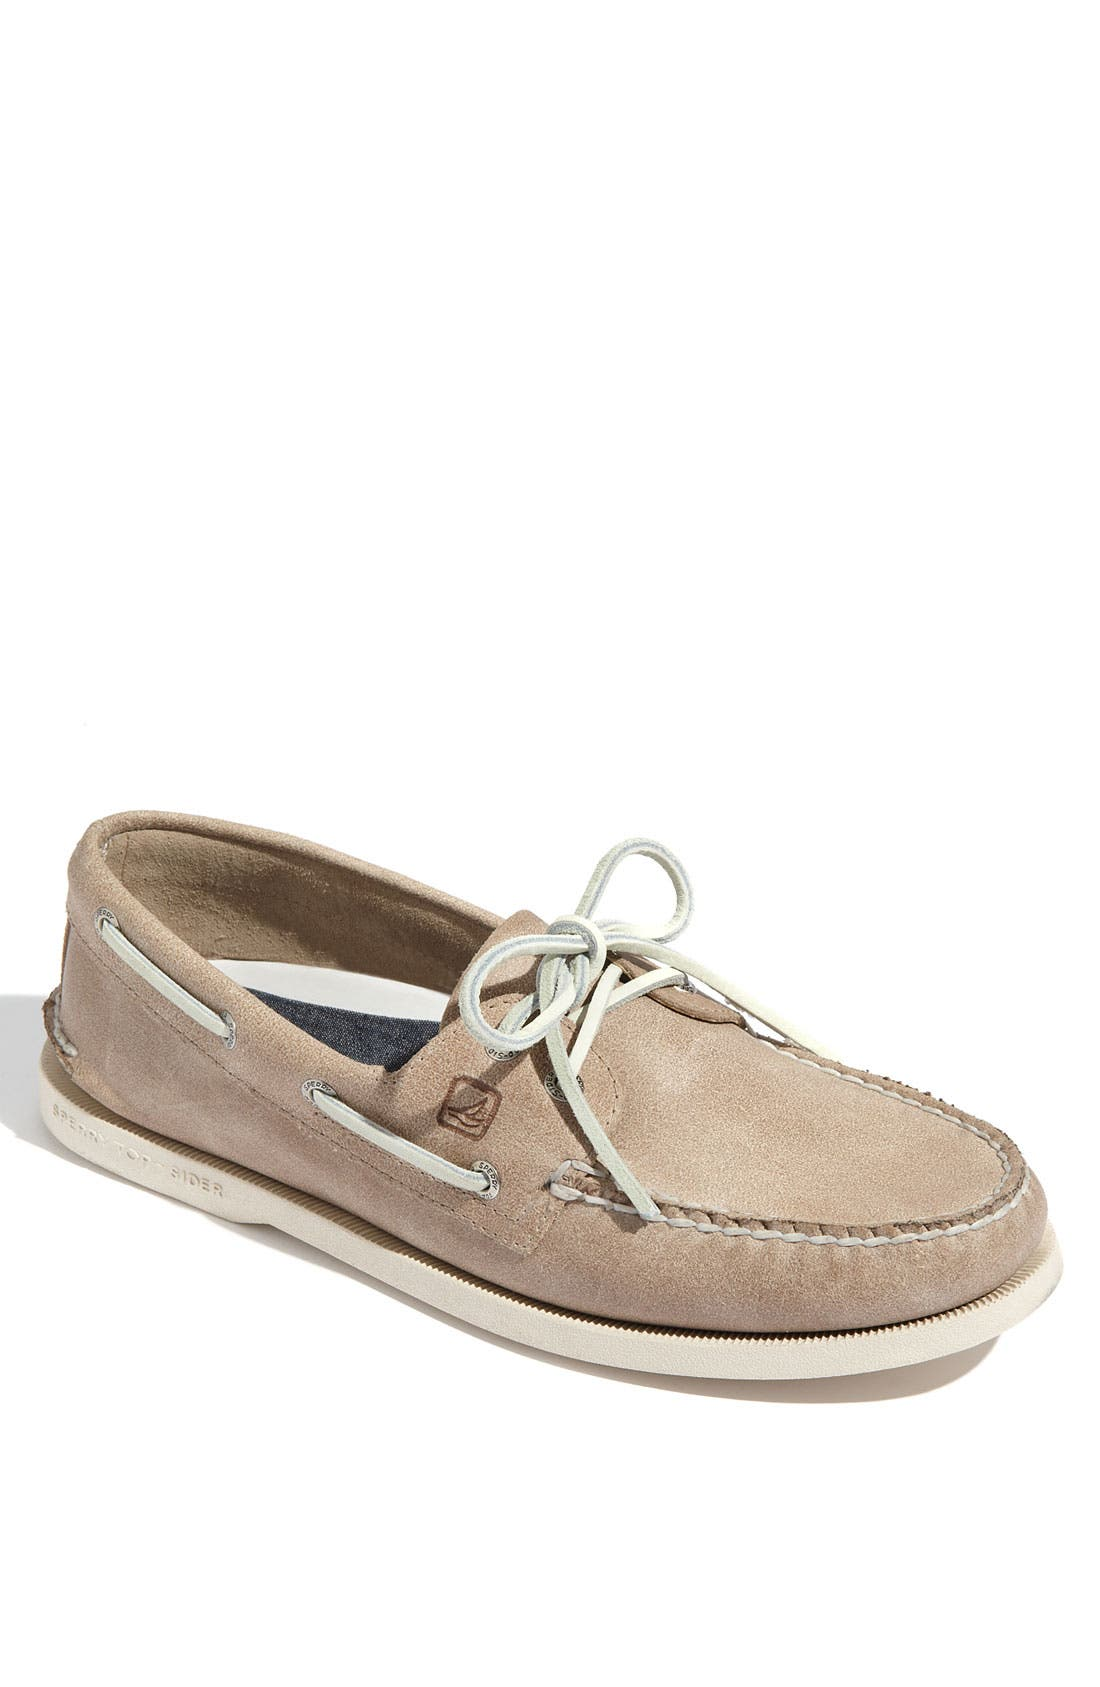 Alternate Image 1 Selected - Sperry Top-Sider® 'Authentic Original' Salt Stained Boat Shoe